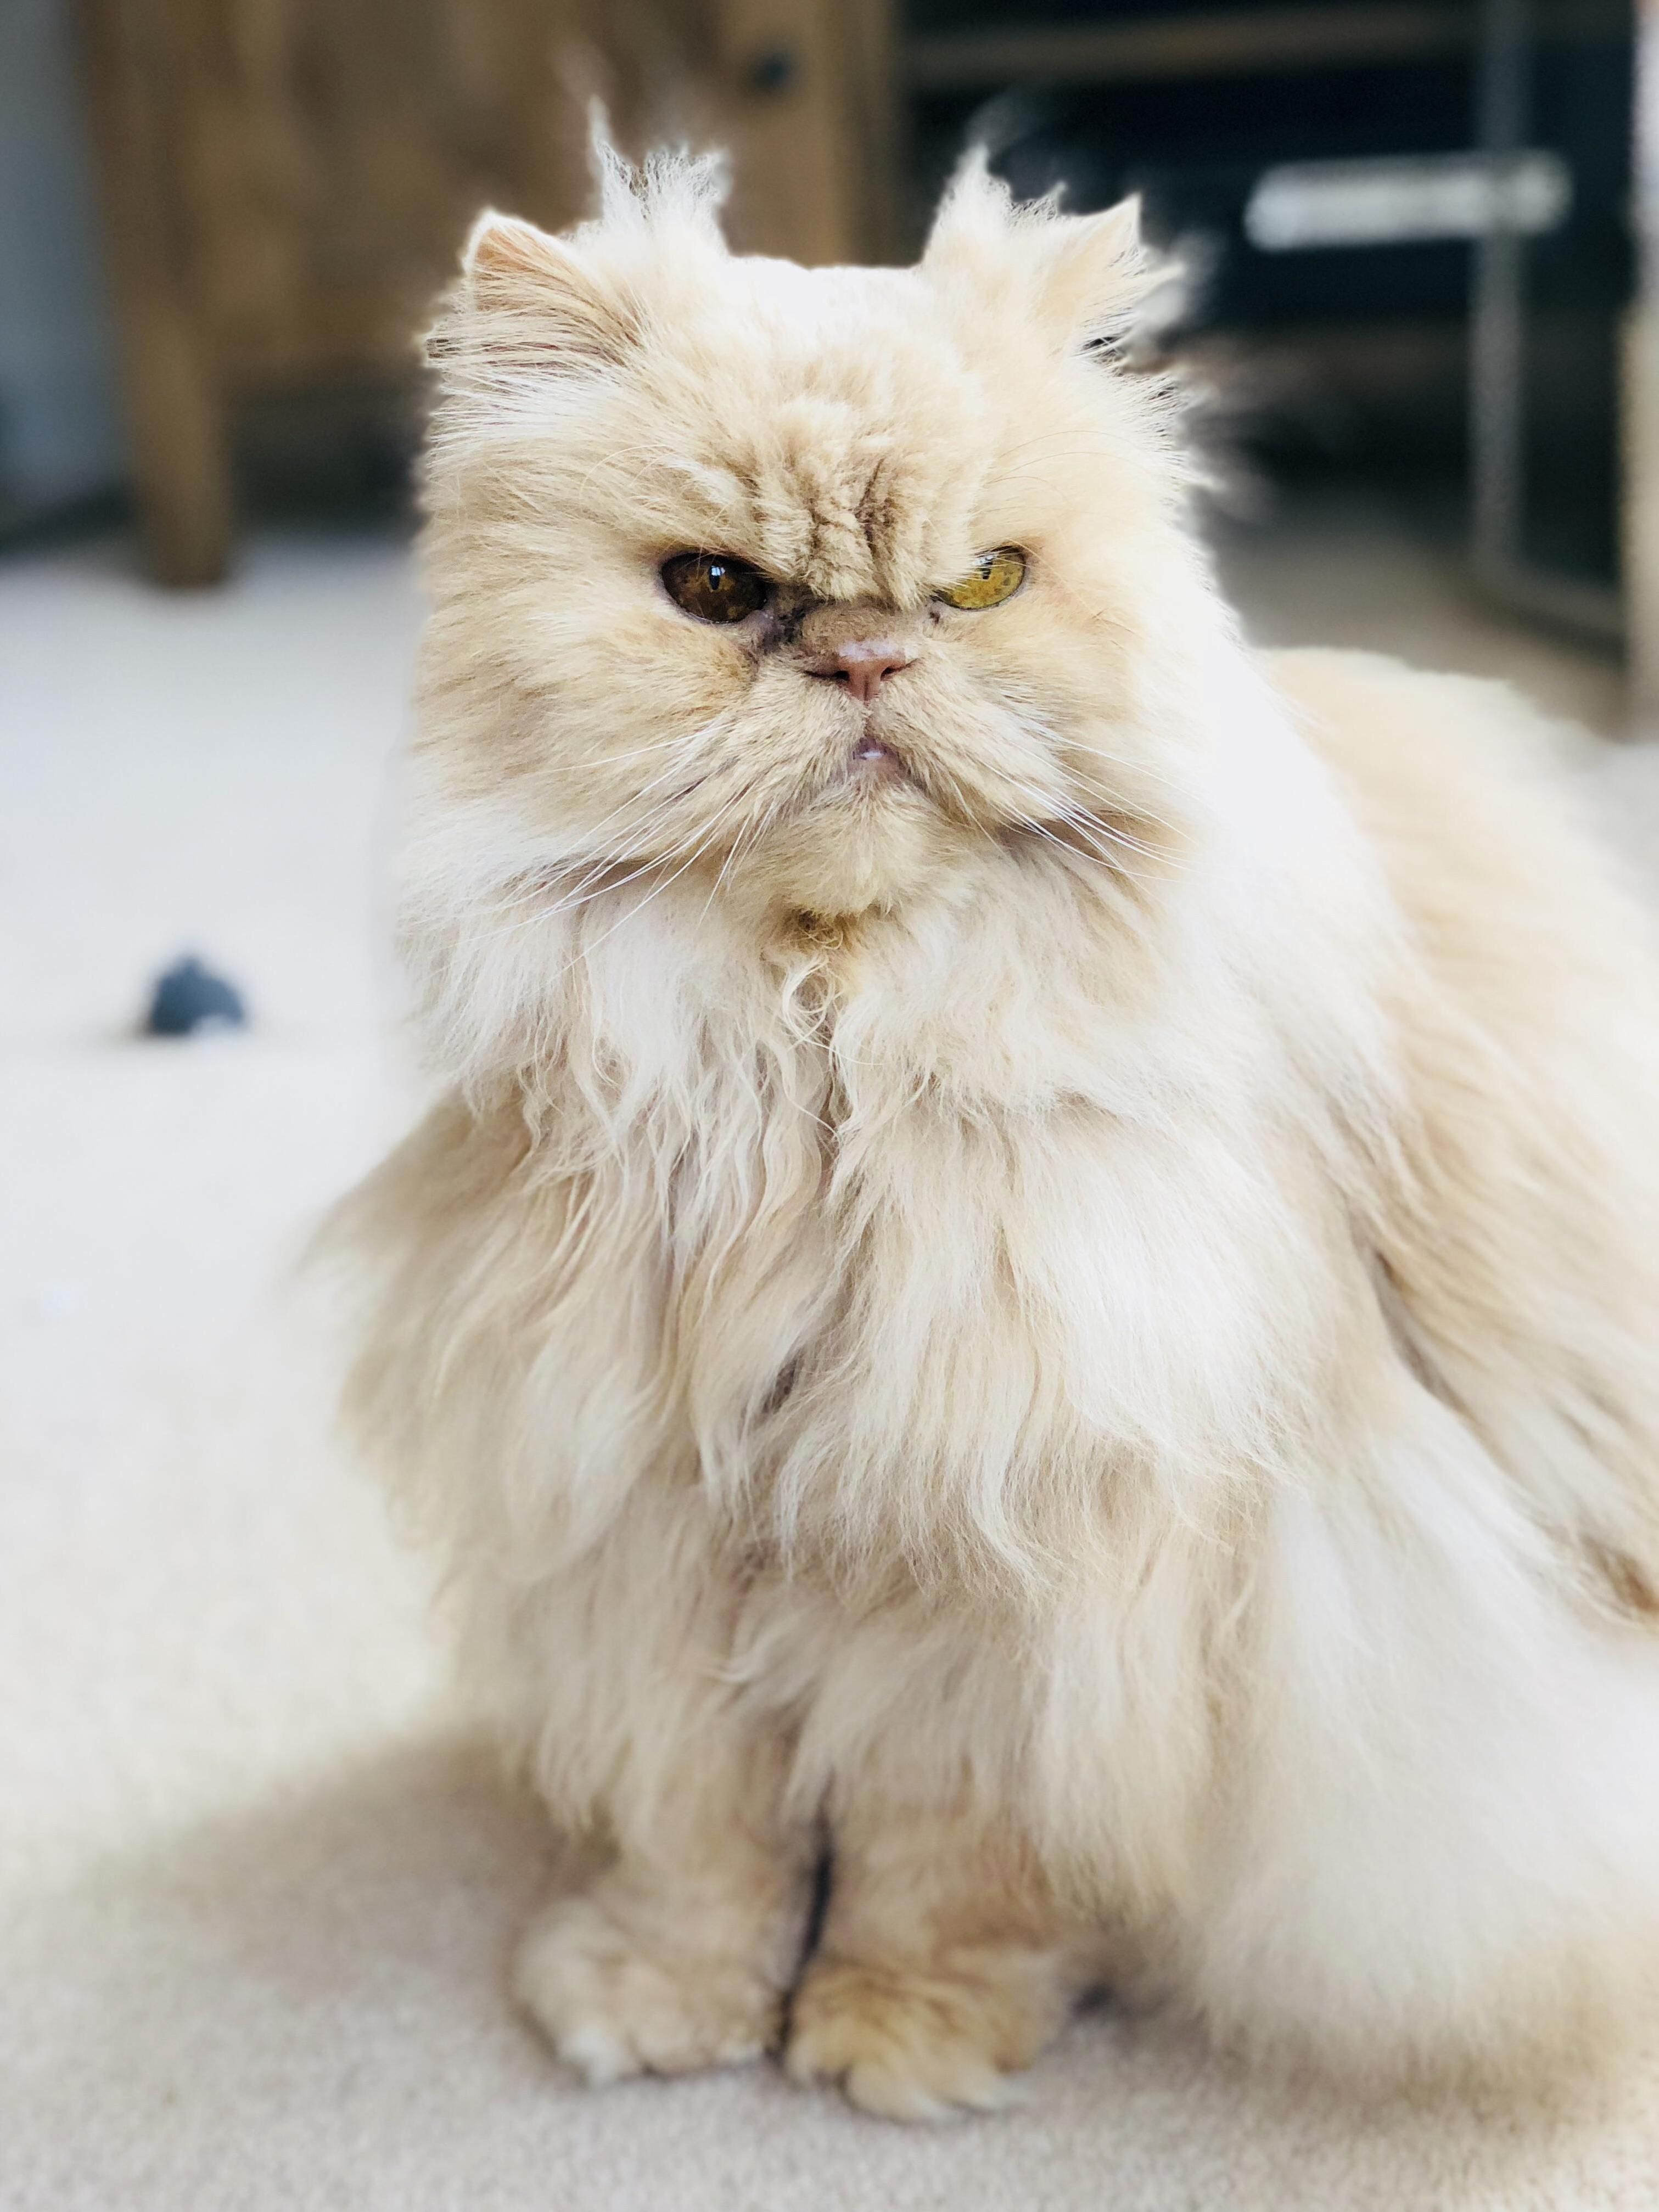 Meet mr o. old, grumpy but very lovely.